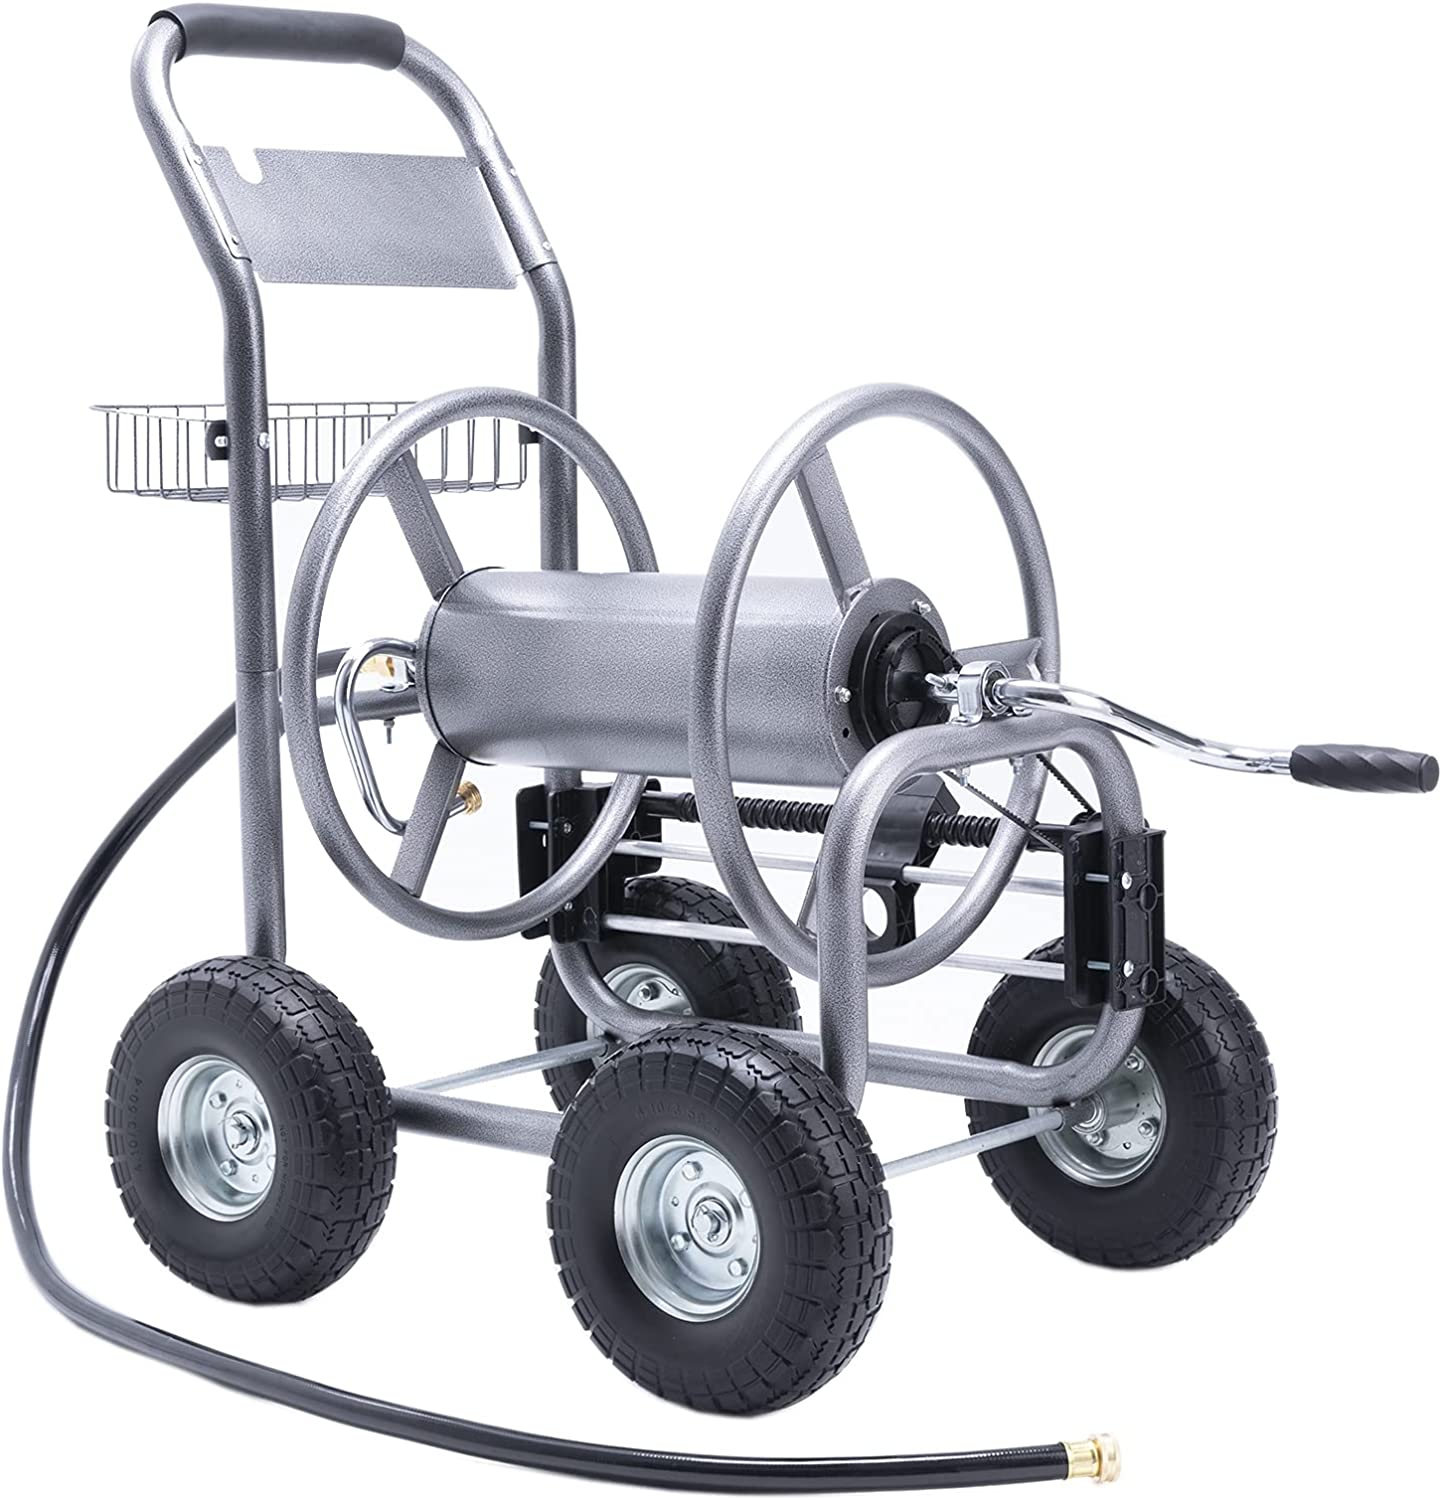 """Giraffe Tools 5/8""""x 250' Garden Hose Reel Cart, Portable Hose Organizer with 4 Solid Wheels, Hose Guide System, for Industrial and Family Yard, Garden, Farm and Patio"""